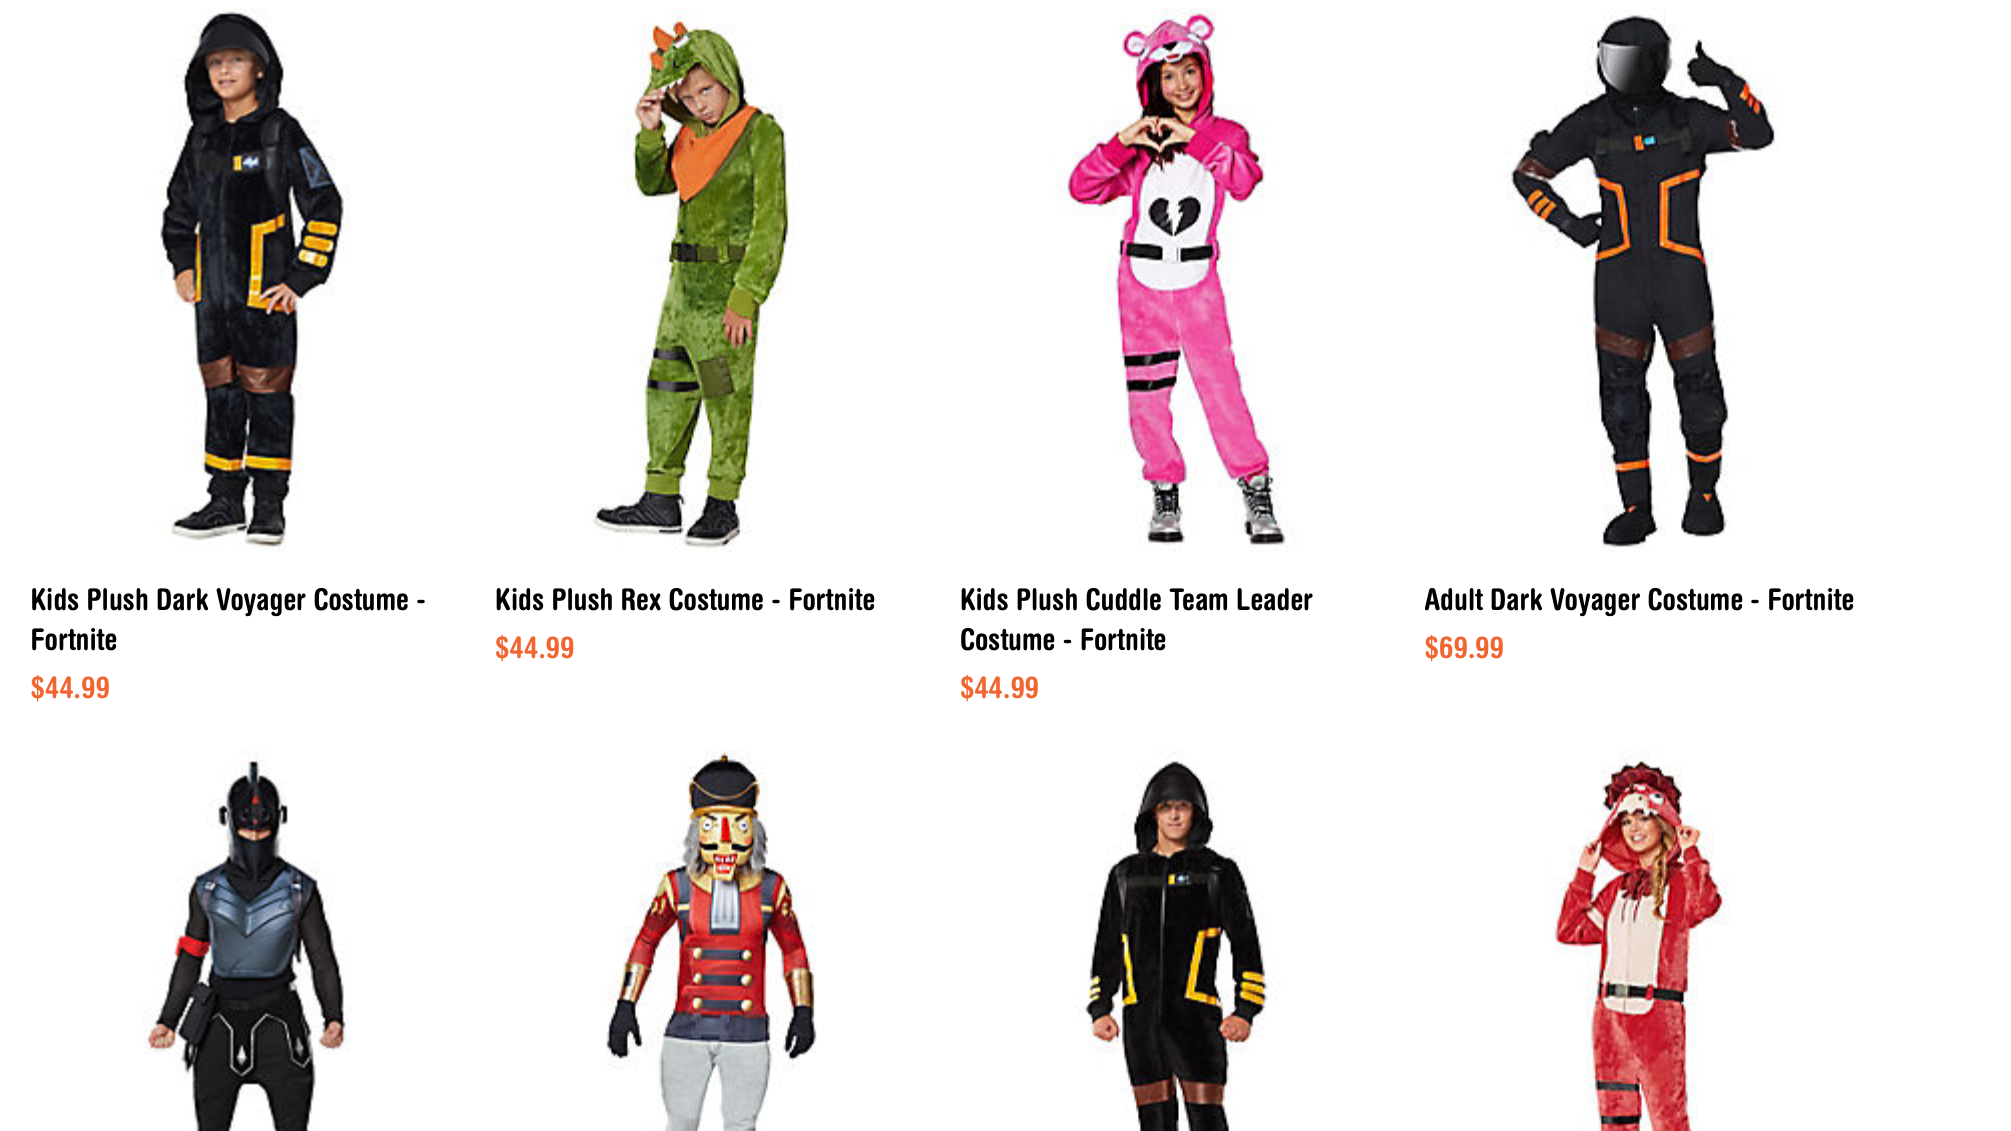 Spirit Halloween Fortnite Costumes For Kids.The Best Places To Buy Halloween Costumes Online That Don T